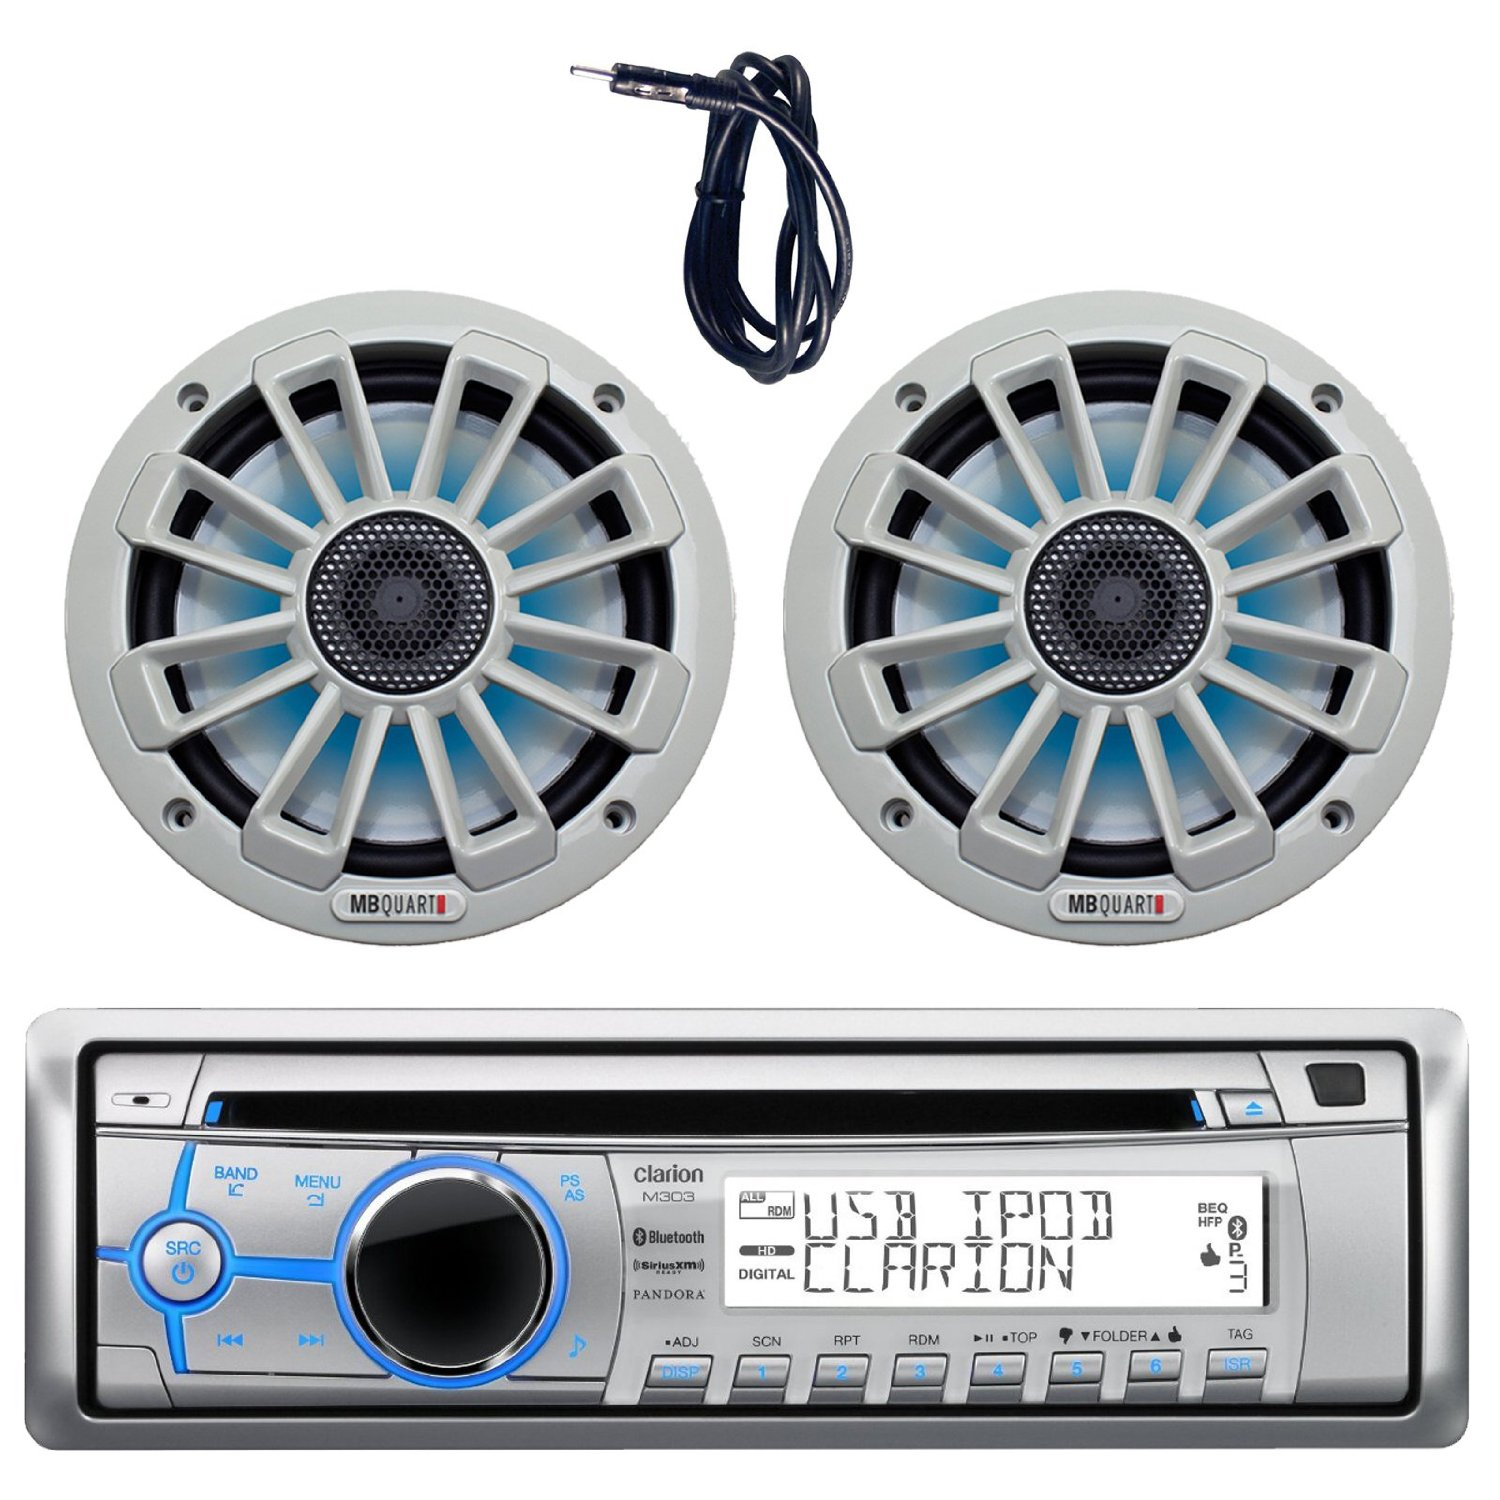 Cheap Clarion Marine Stereo Bluetooth, find Clarion Marine